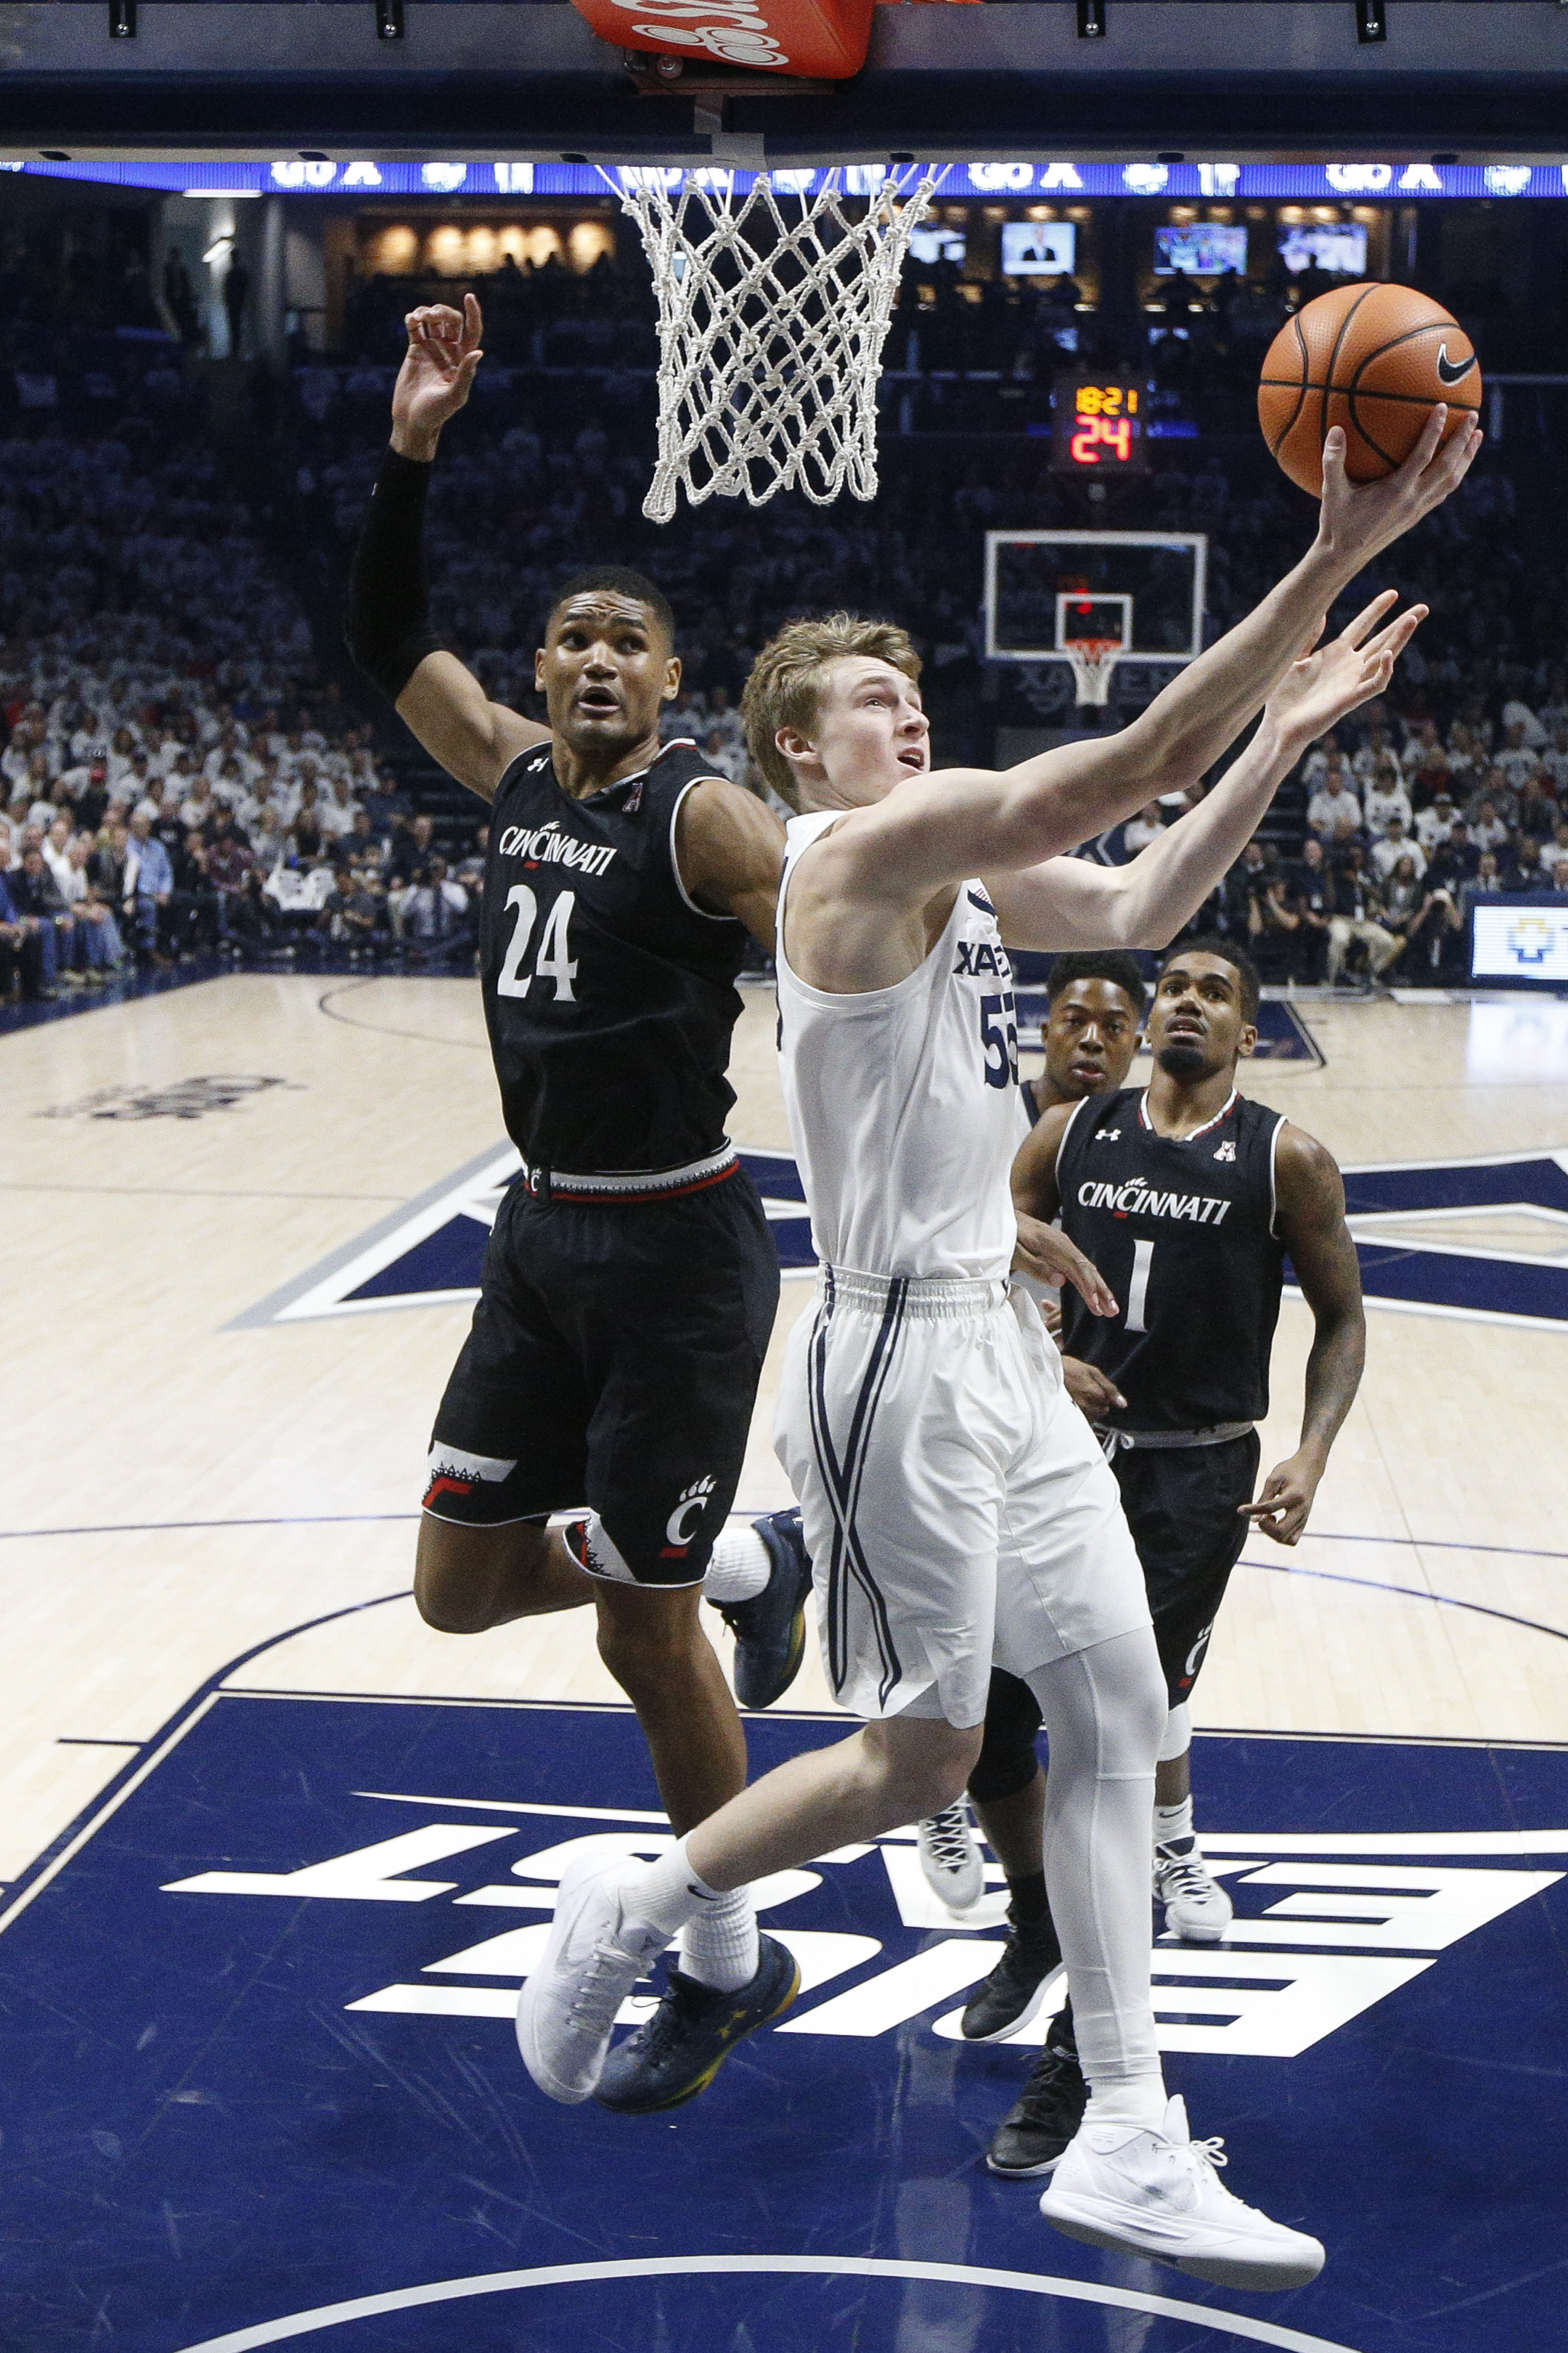 Xavier's J.P. Macura (55) shoots against Cincinnati's Kyle Washington (24) in the first half of an NCAA college basketball game, Saturday, Dec. 2, 2017, in Cincinnati. (AP Photo/John Minchillo)